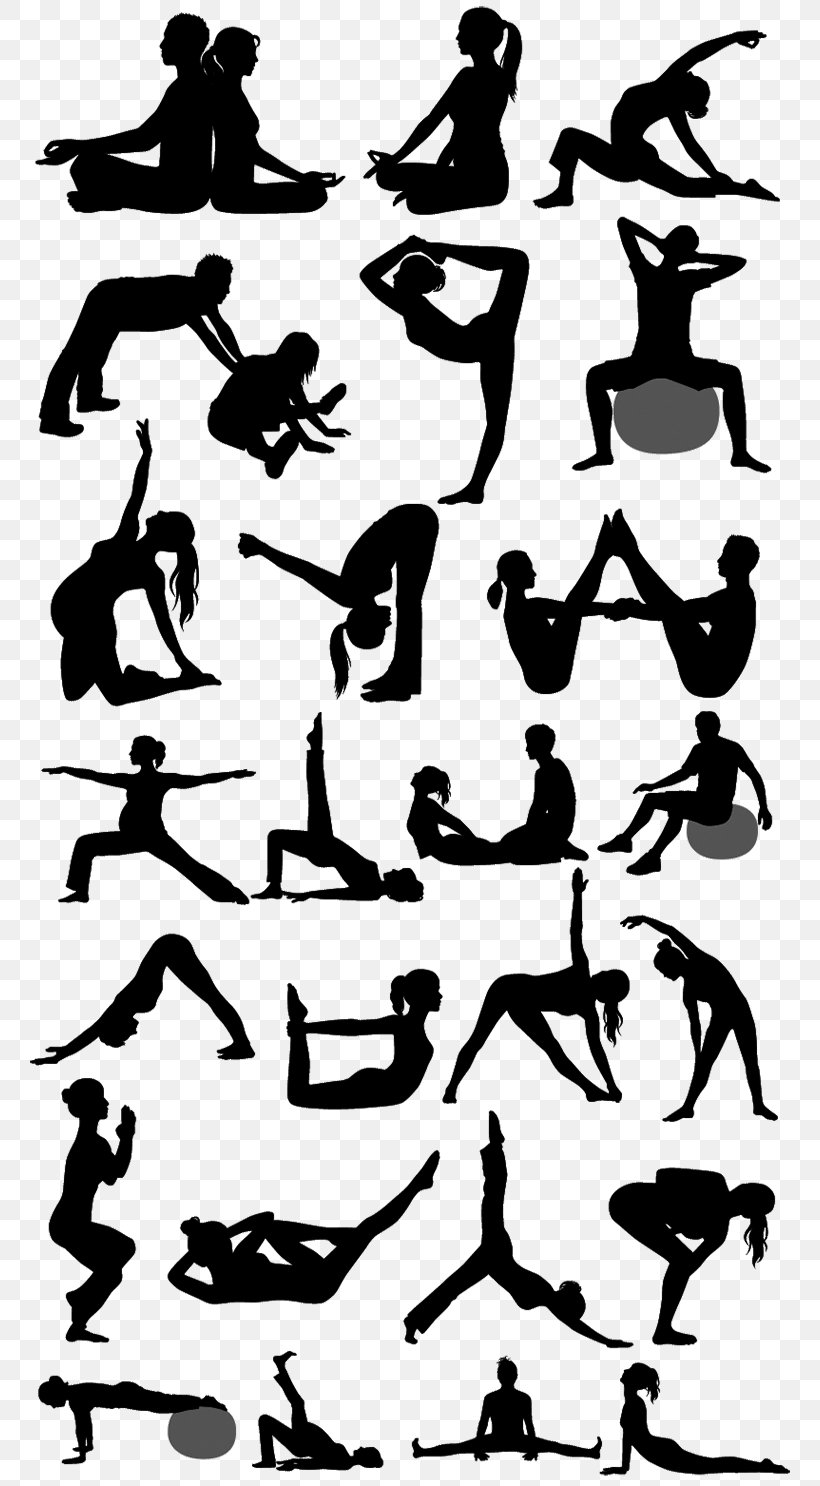 Silhouette Physical Fitness Pilates Yoga Png 770x1486px Silhouette Arm Art Black And White Exercise Download Free